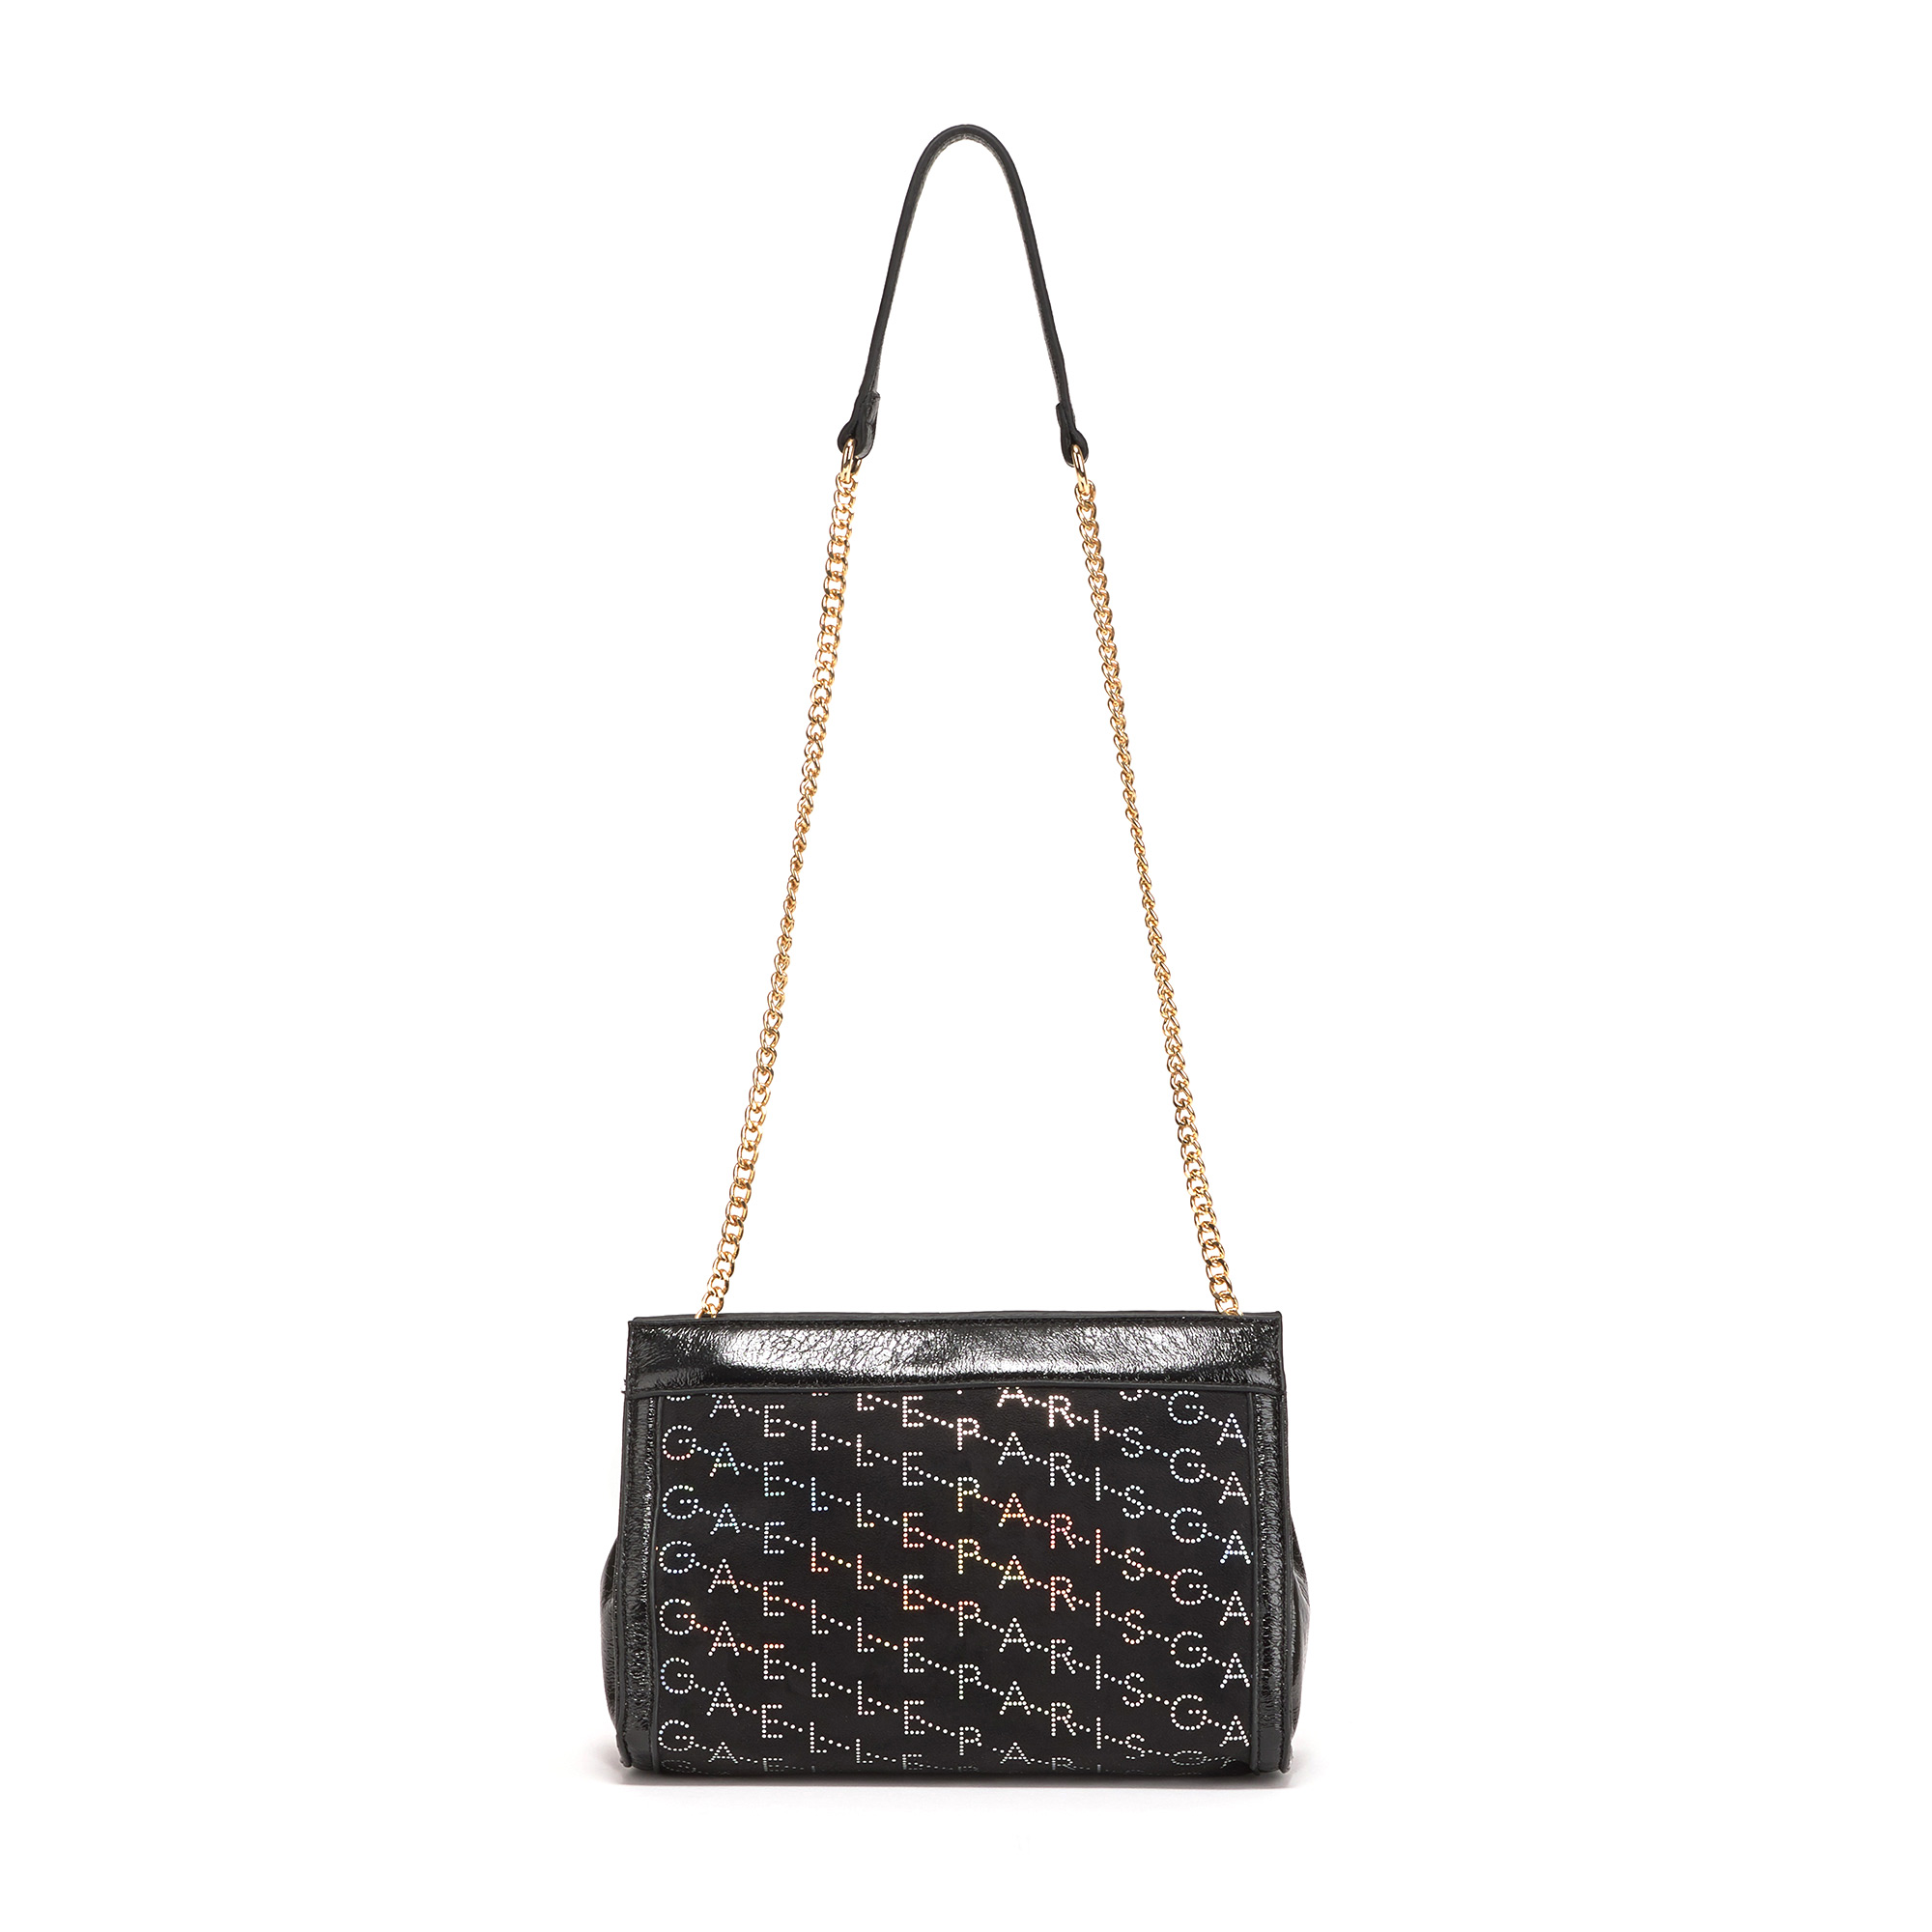 SHOULDER BAG - GBDA1473 - GAELLE PARIS